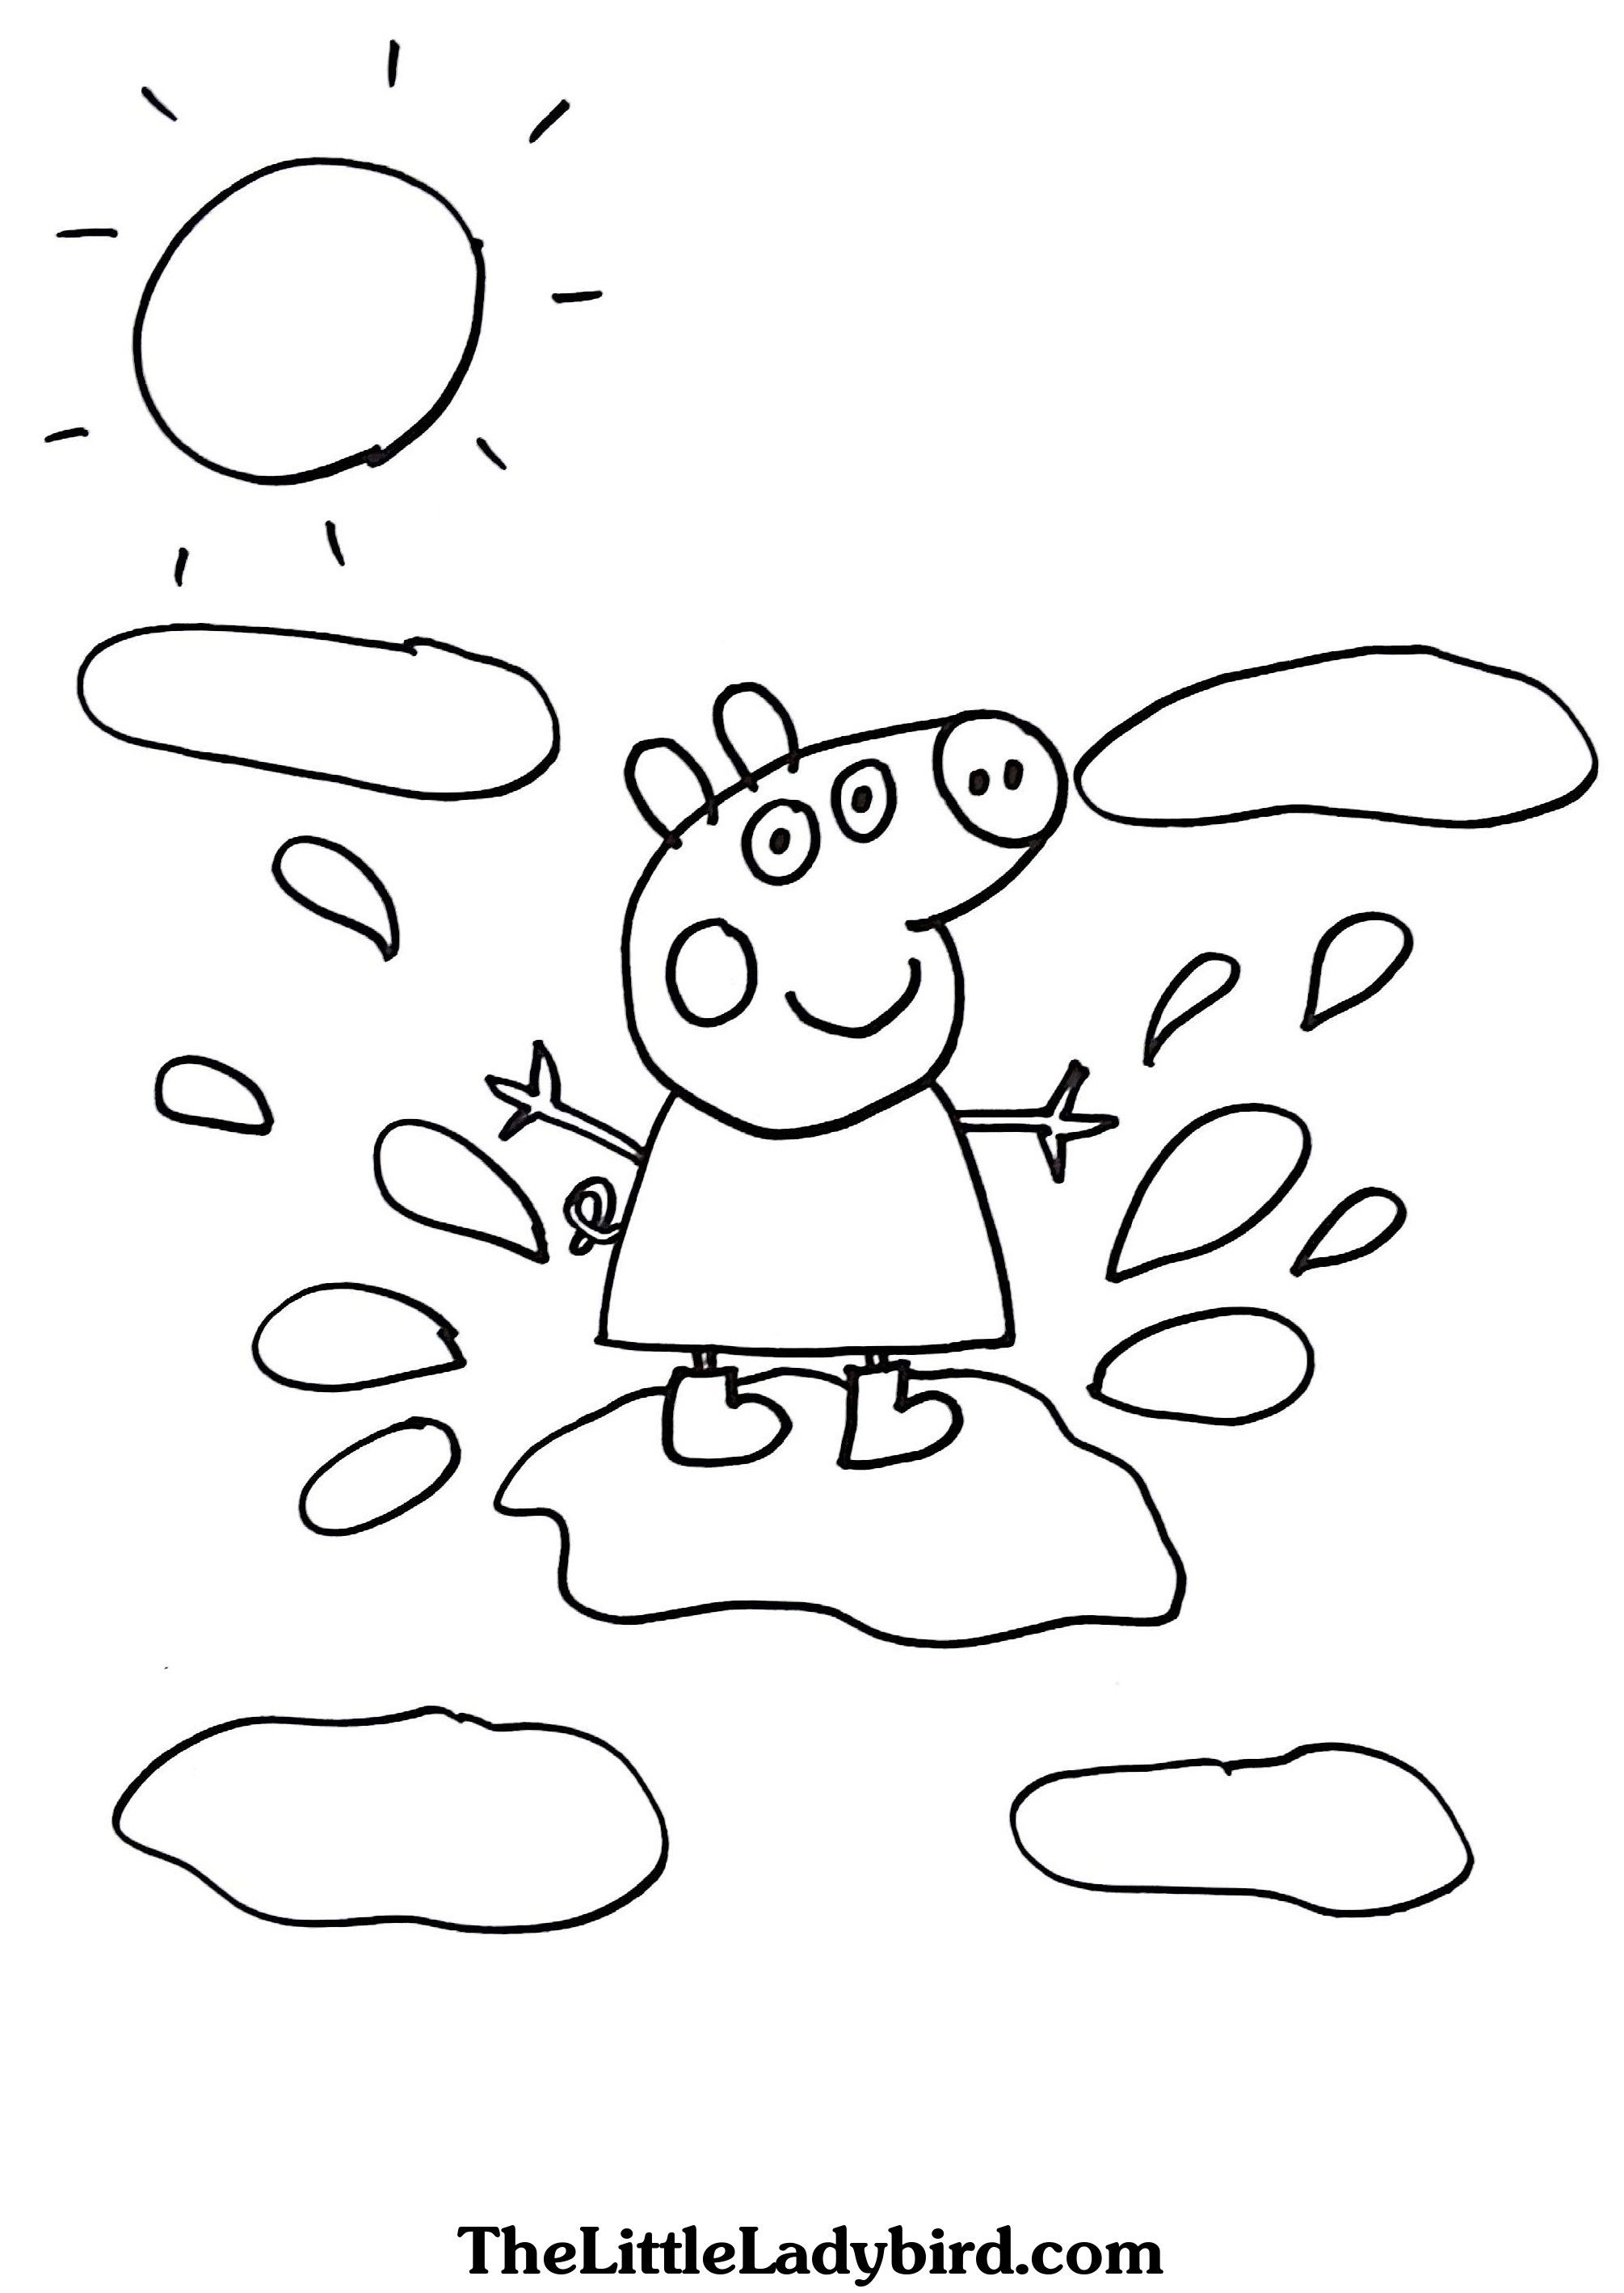 Peppa Pig Muddy Puddles Coloring Pages – Through the thousand ...